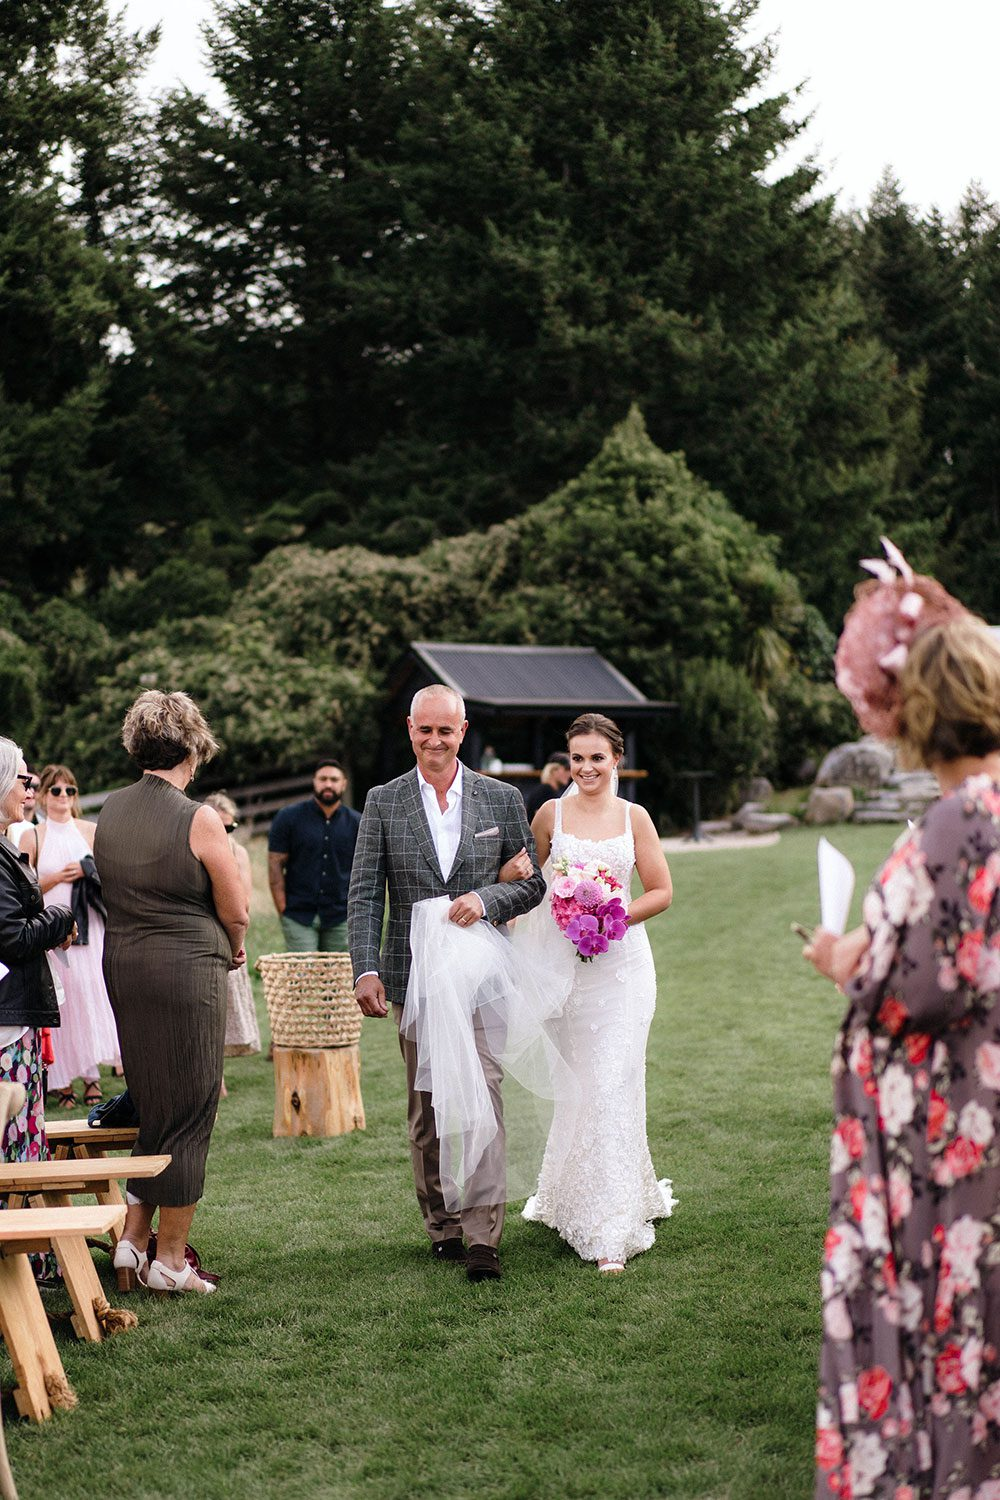 Bride wears bespoke E'More lace gown with boned bodice with hand beaded flower applique and full lace train by Auckland wedding dress maker Vinka designs - walking down aisle